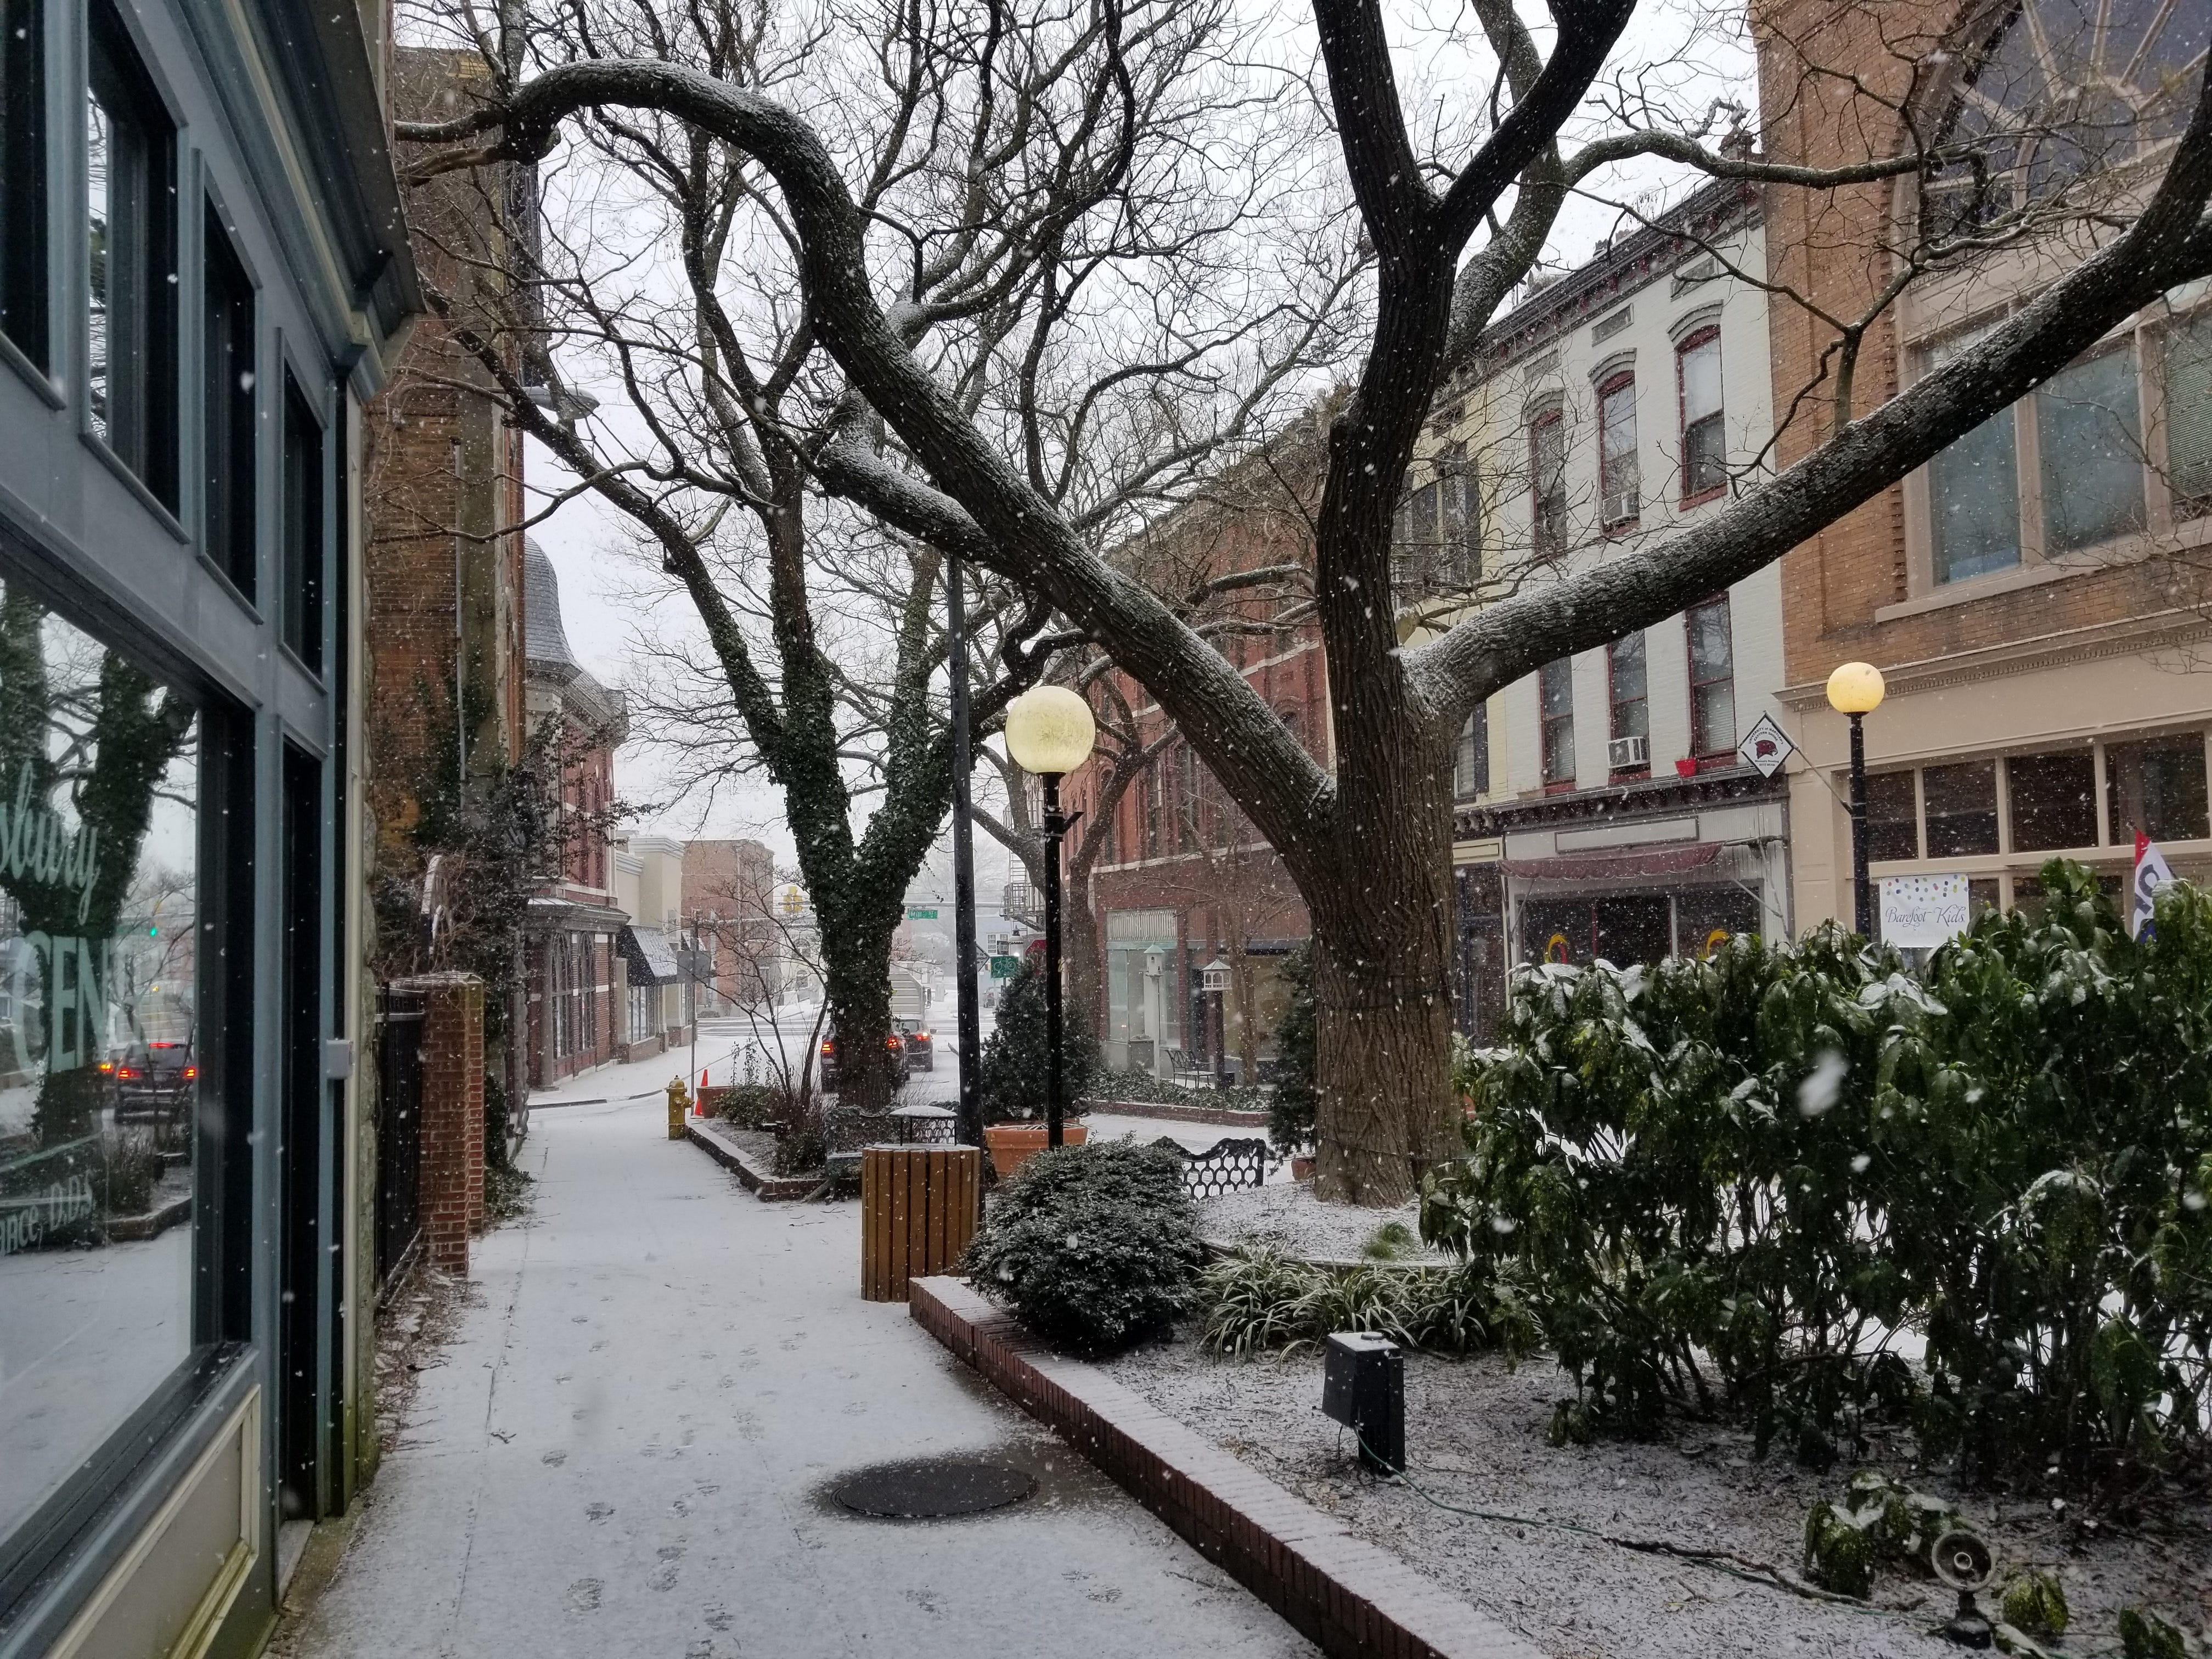 Snow falls Friday on the Downtown Plaza in Salisbury.